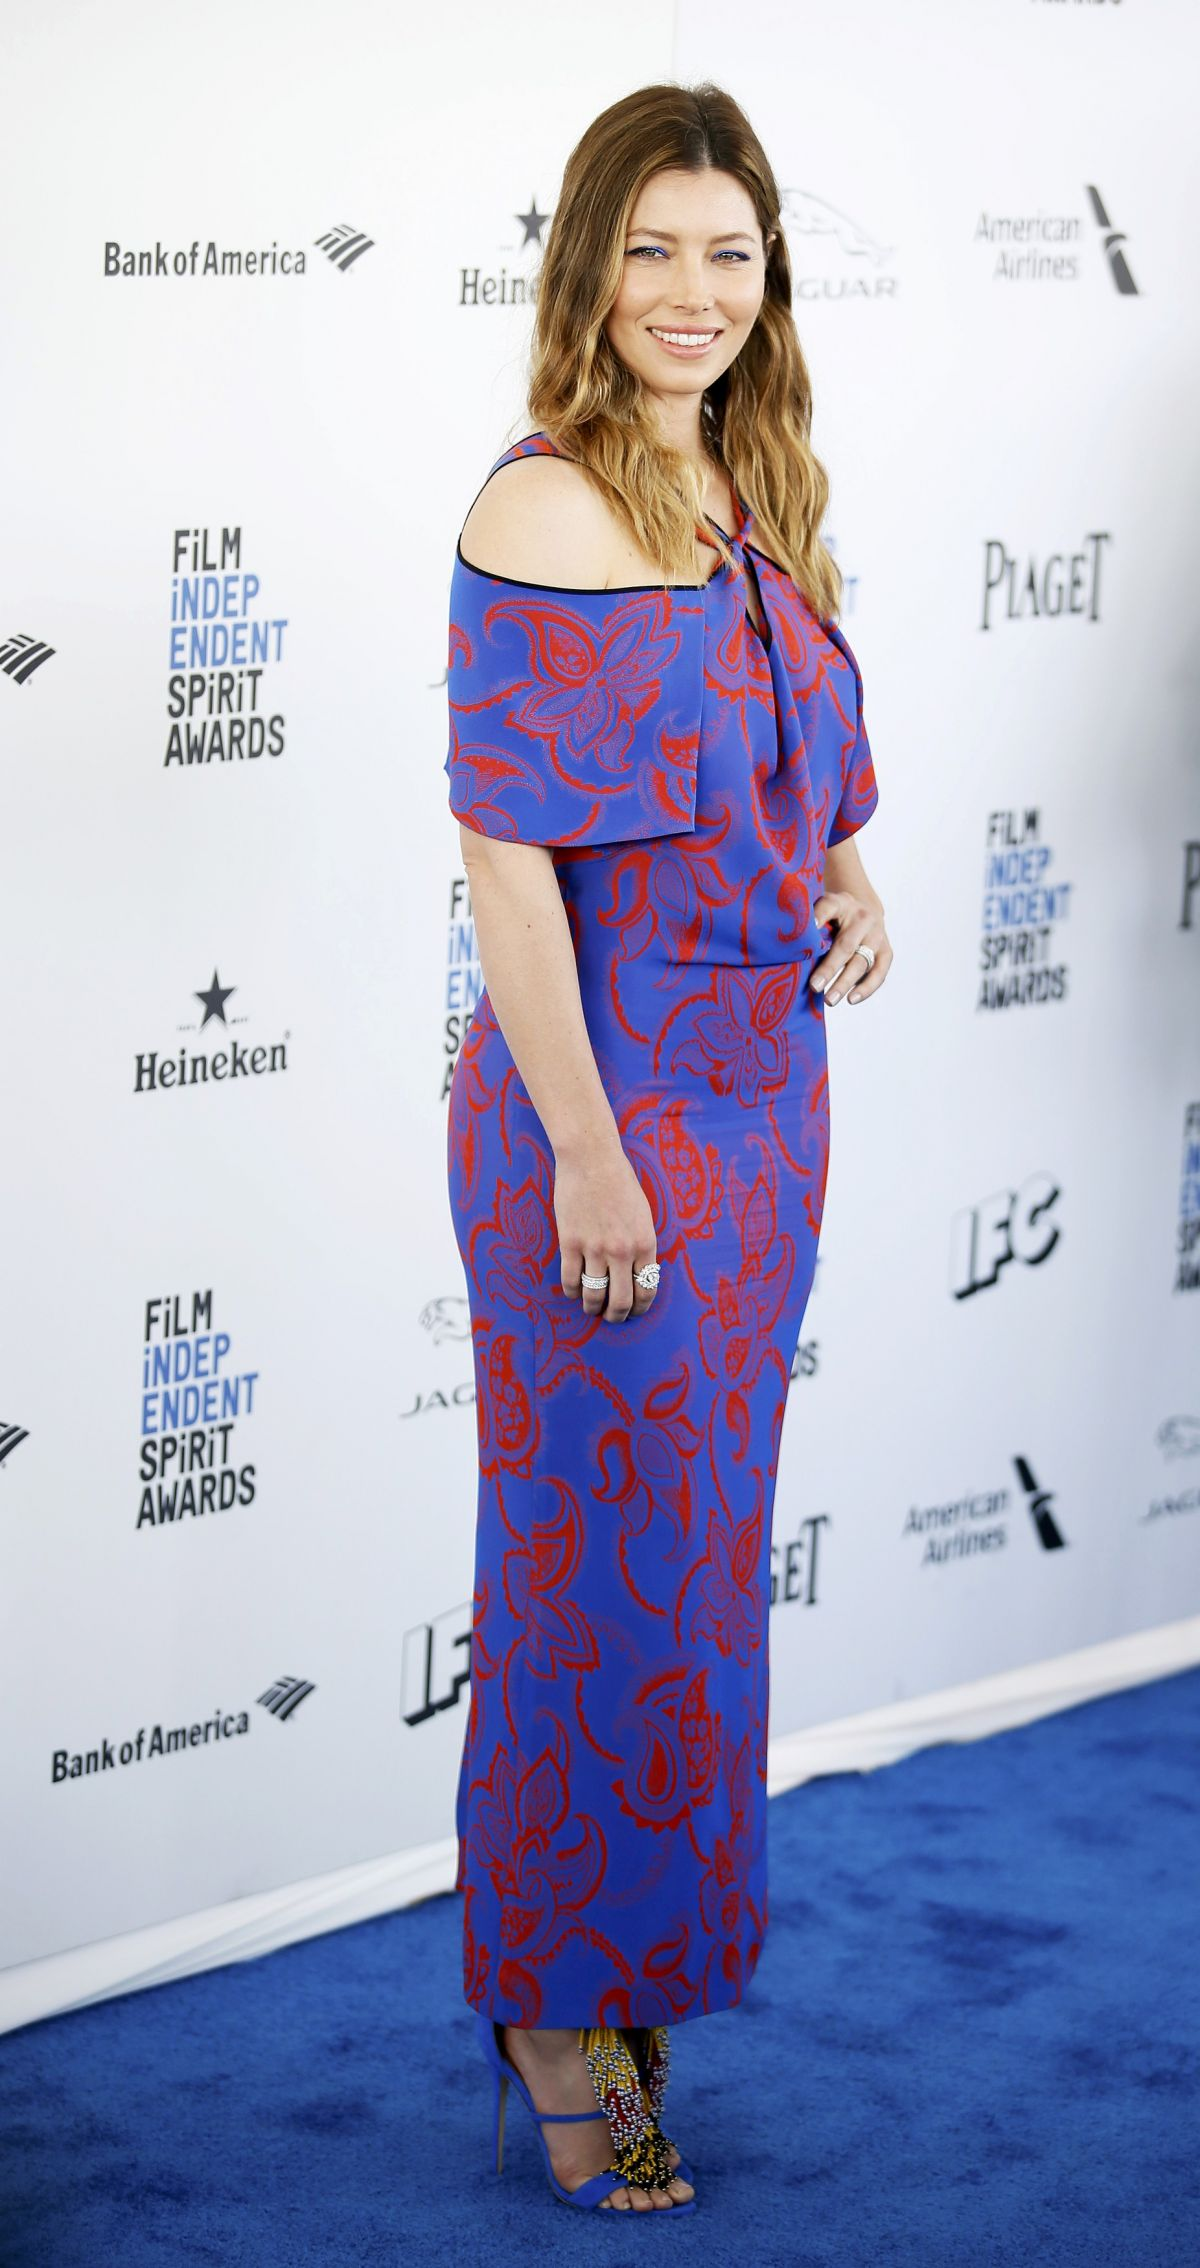 JESSICA BIEL at Film Independent Spirit Awards in Santa Monica 02/27 ...